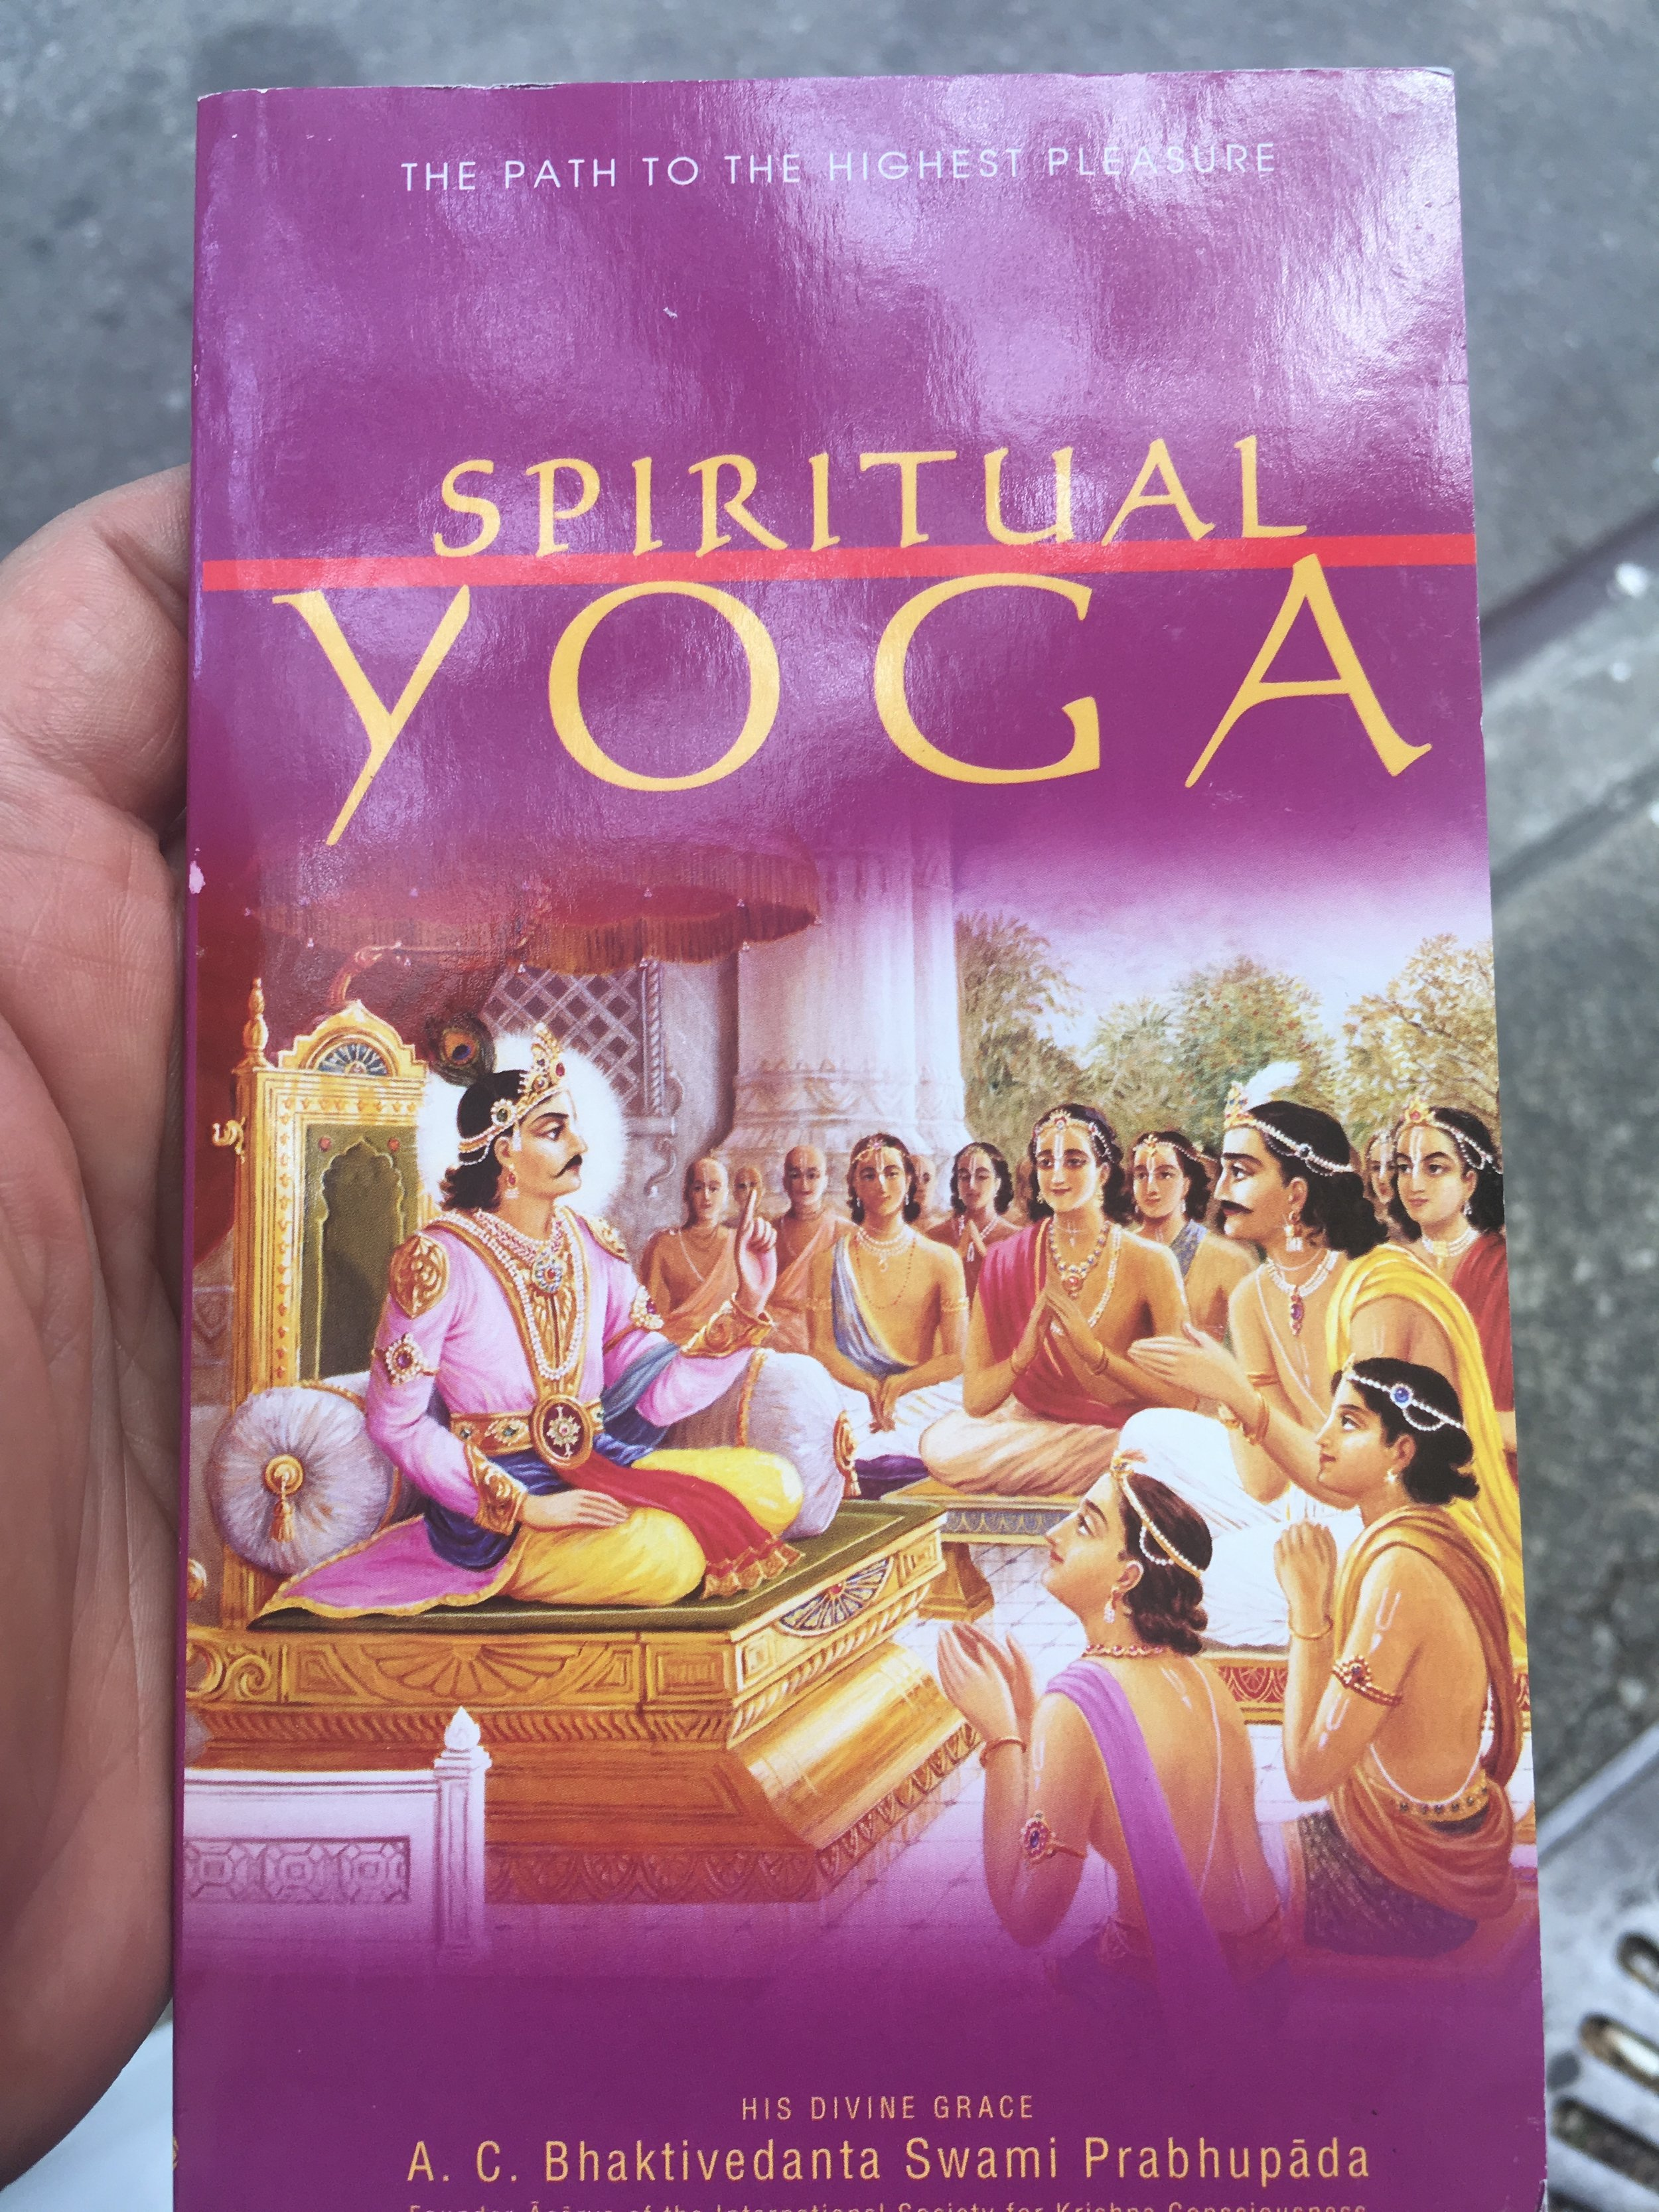 And because the Krishnas are love, a beautiful young girl invited me to their festival in Washington Square park and gave me this ^